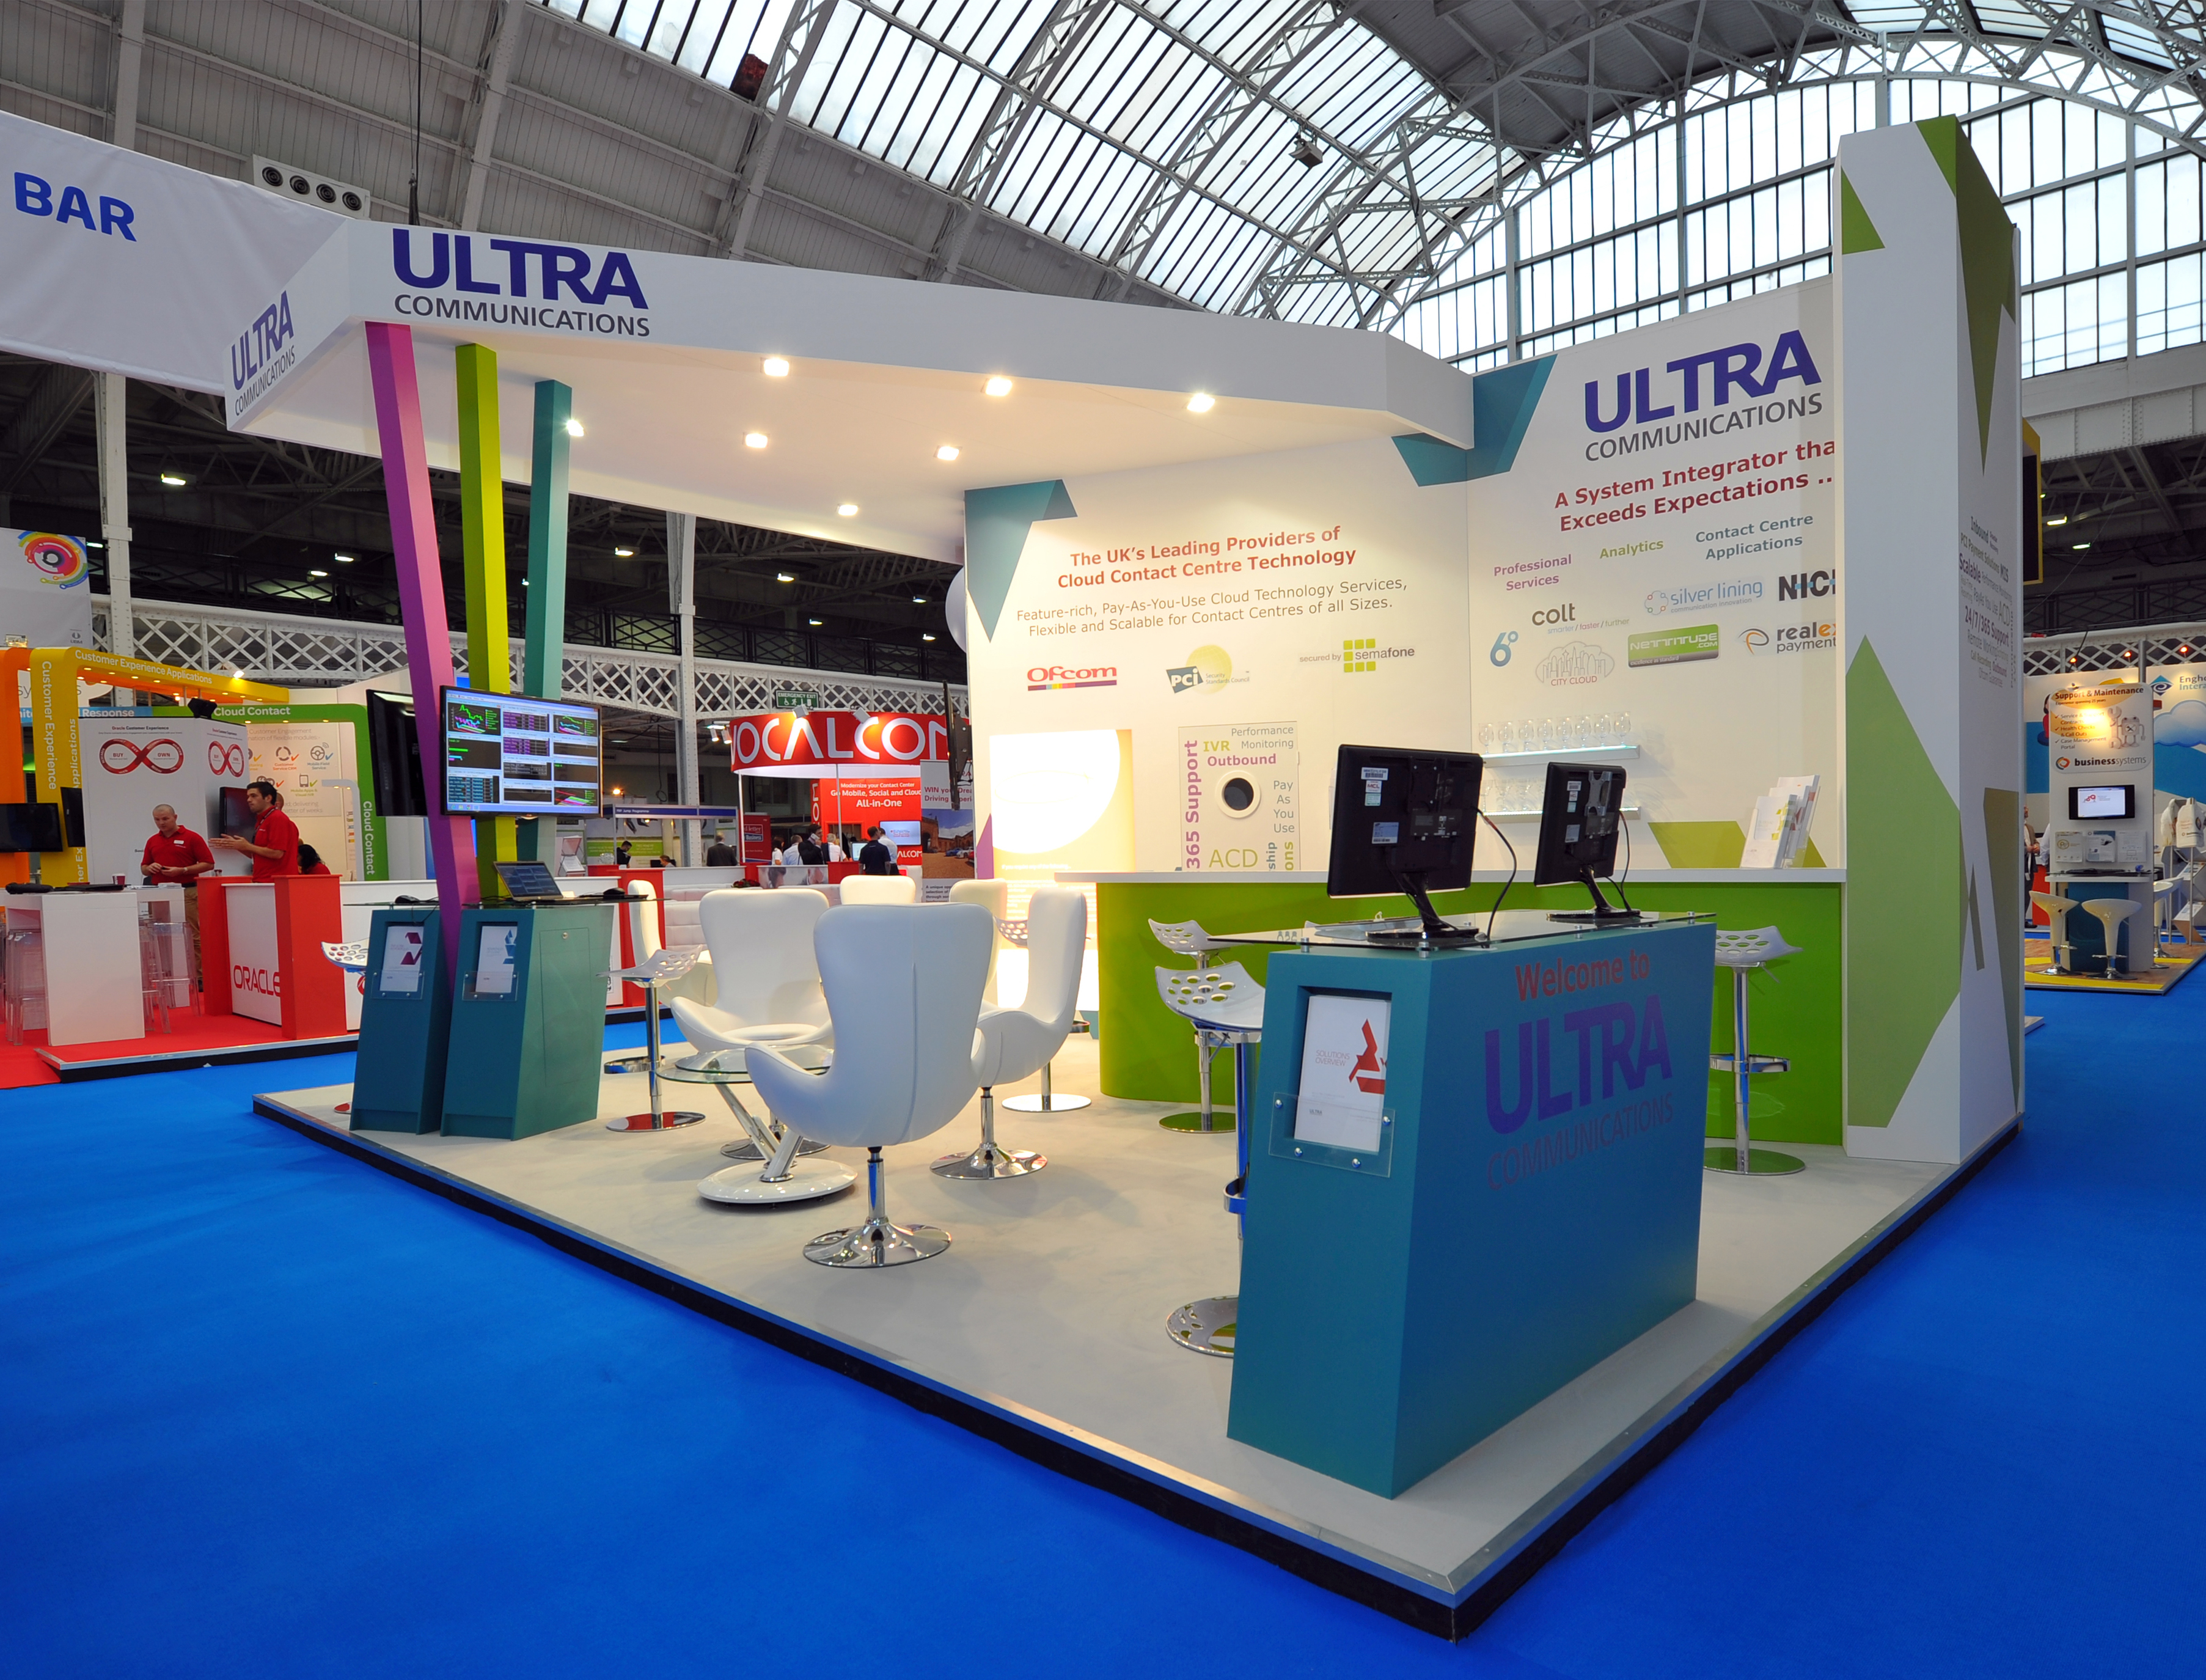 Exhibition Stand Builders Yorkshire : Ultra communications